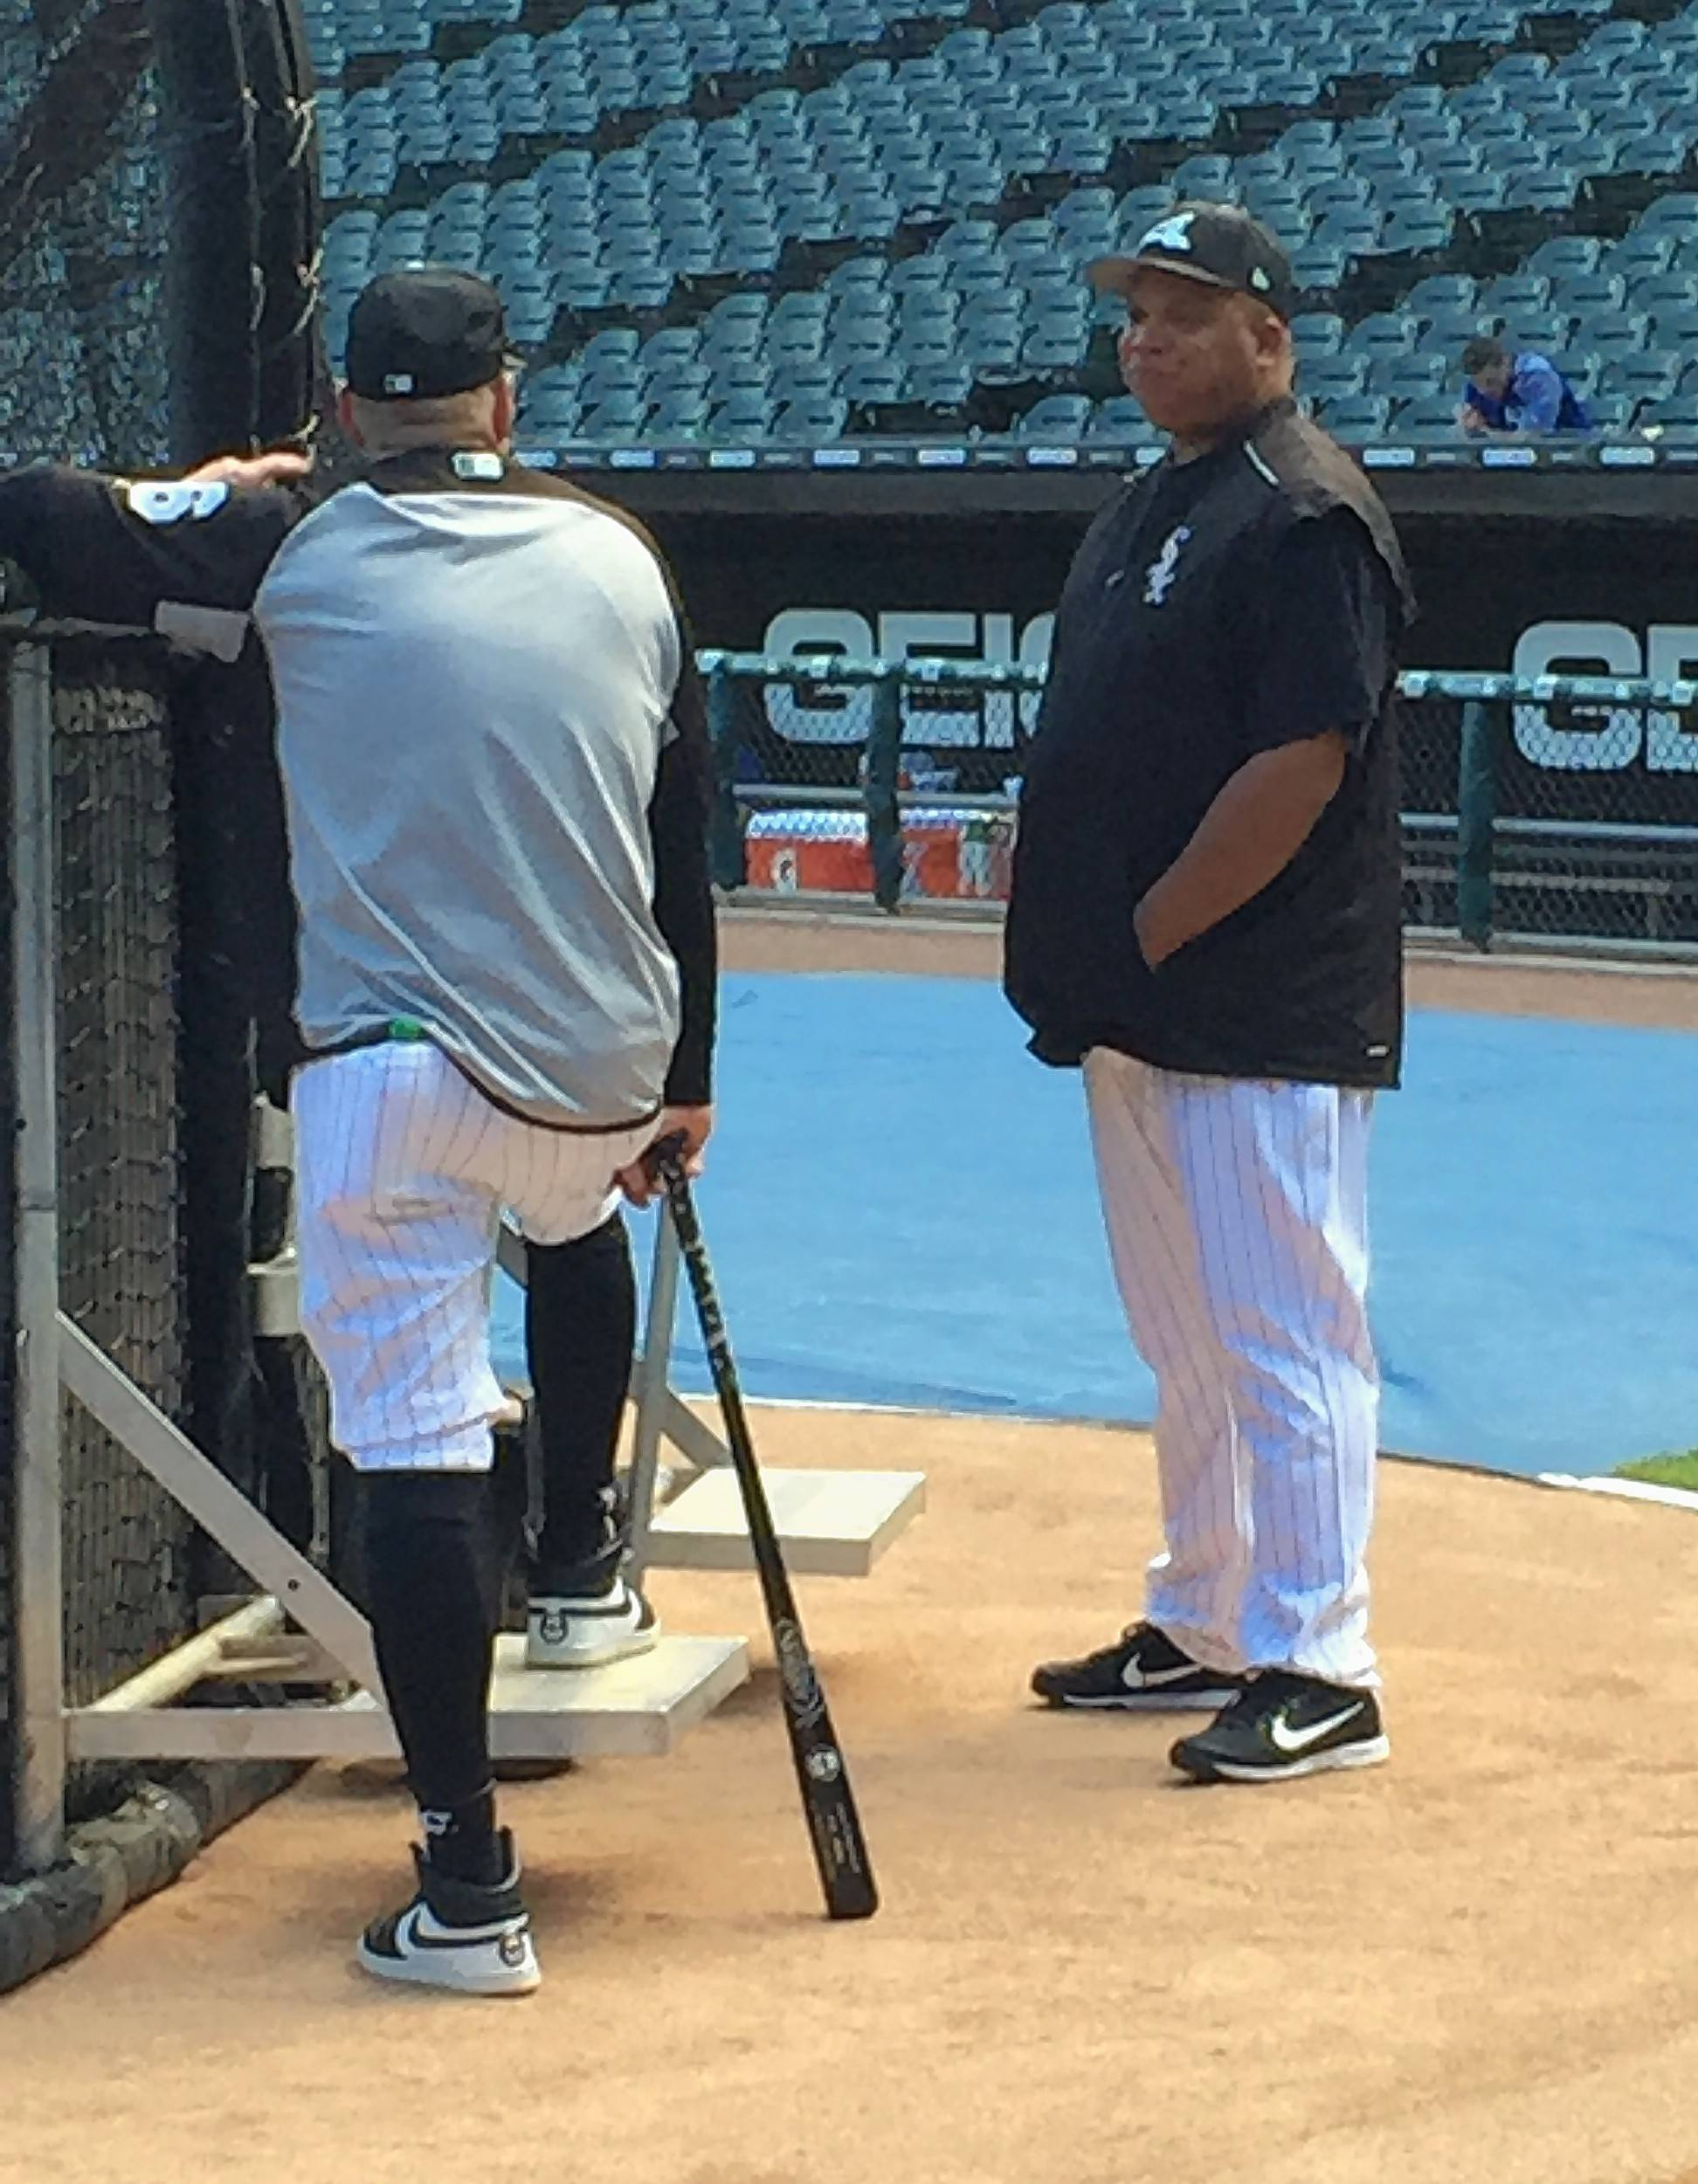 Chicago White Sox hitting coach Todd Steverson, right, talks with assistant hitting coach Greg Sparks before Friday night's game against the Kansas City Royals at Guaranteed Rate Field.